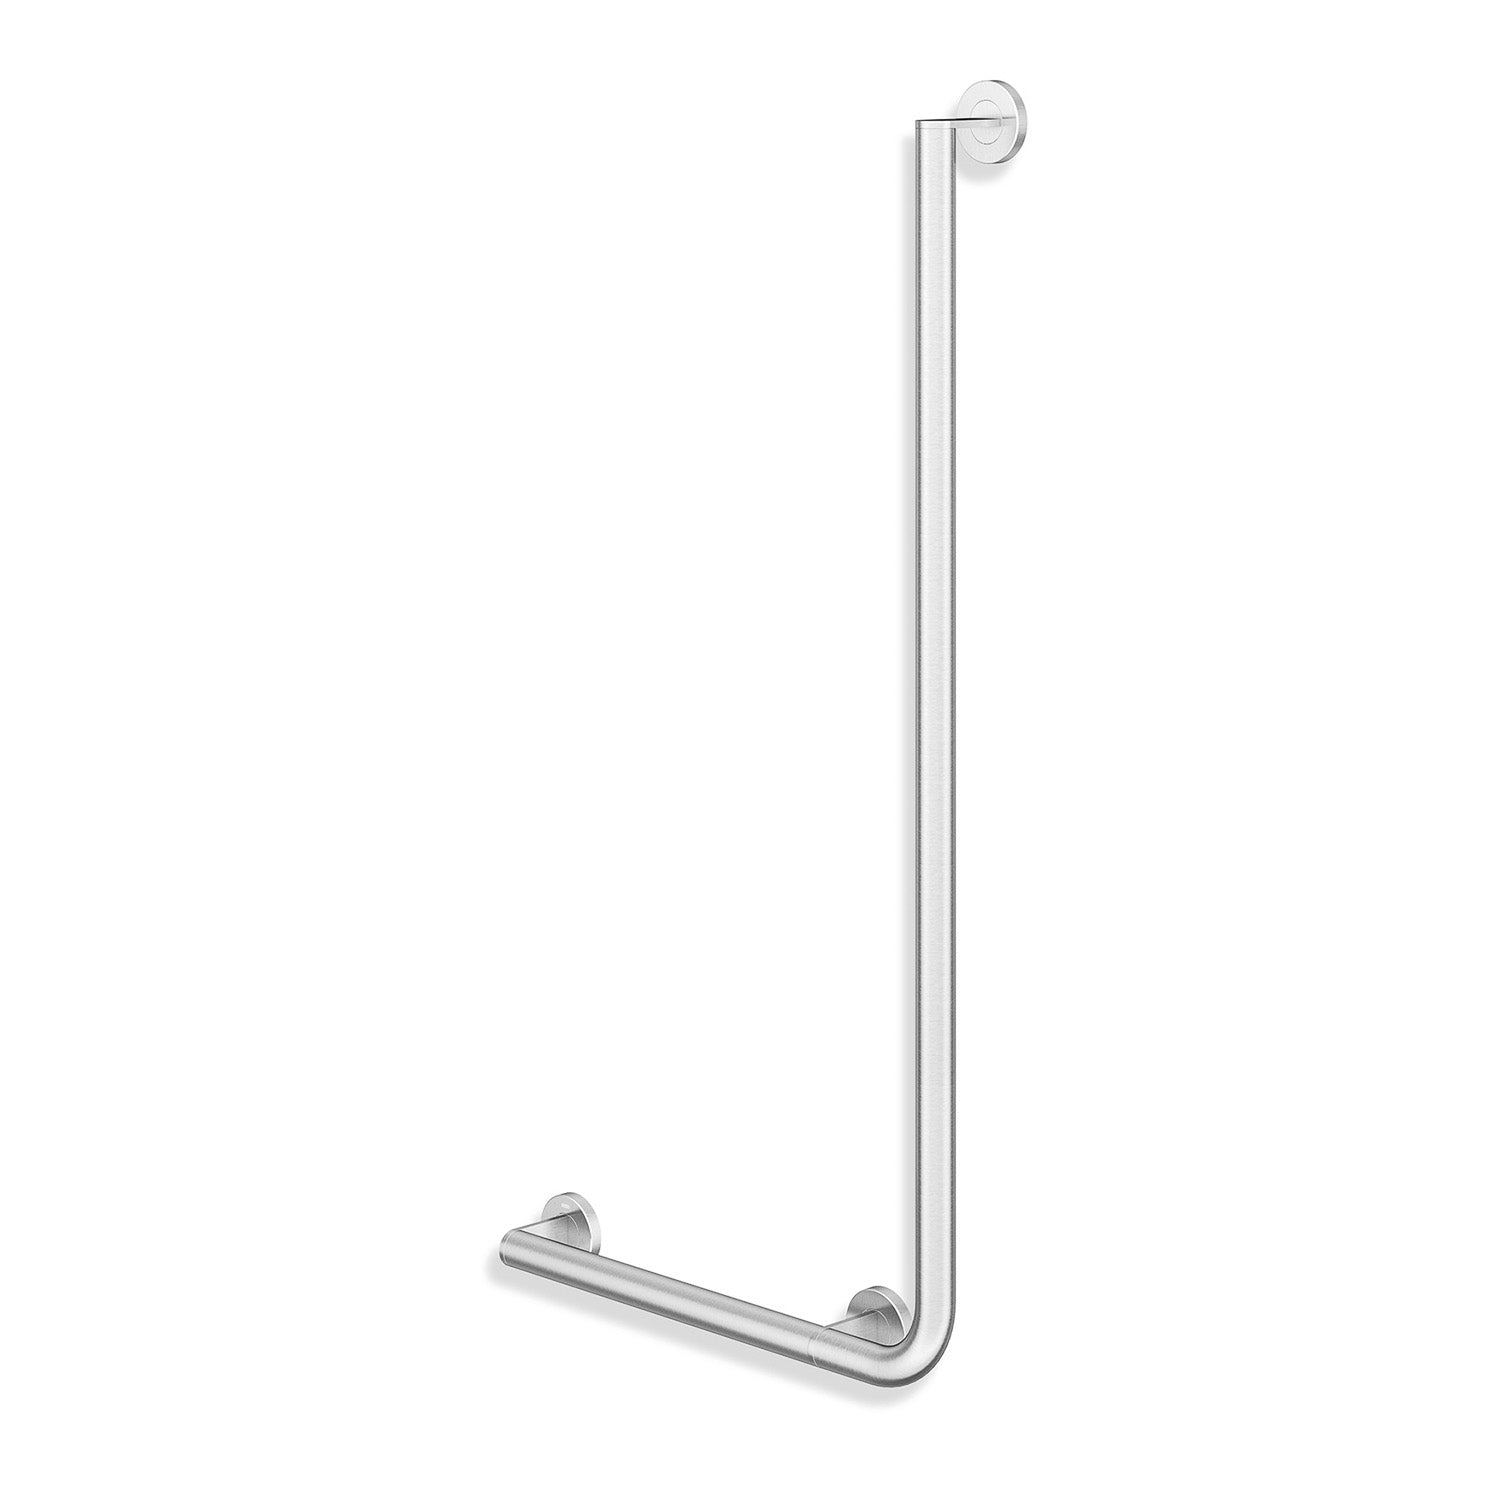 1000x500mm Left Handed Freestyle L Shaped Grab Rail with a satin steel finish on a white background